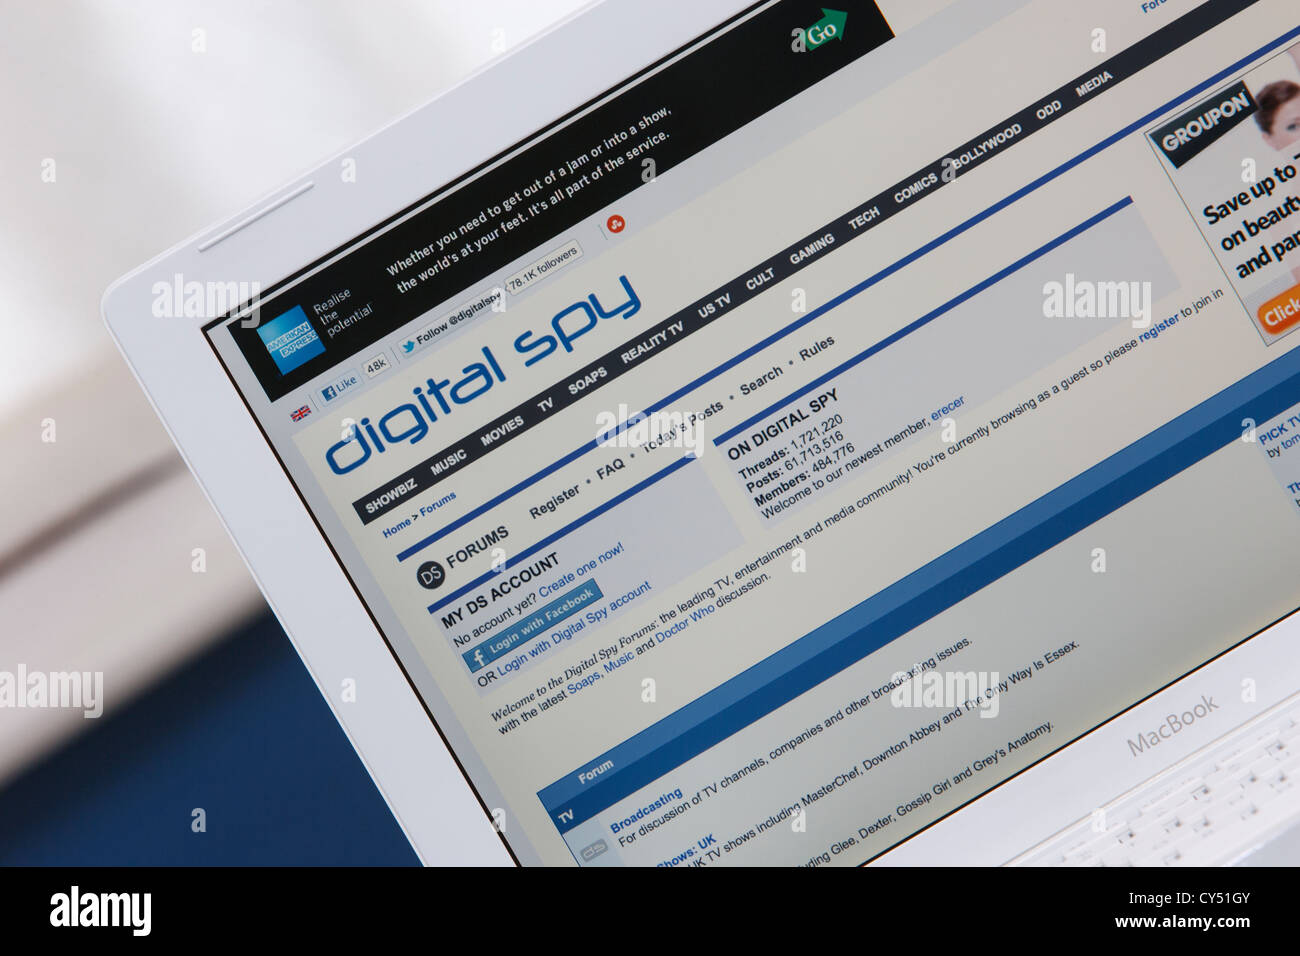 A web page from the Showbiz, entertainment and media news website Digital Spy is shown being viewed on a laptop - Stock Image